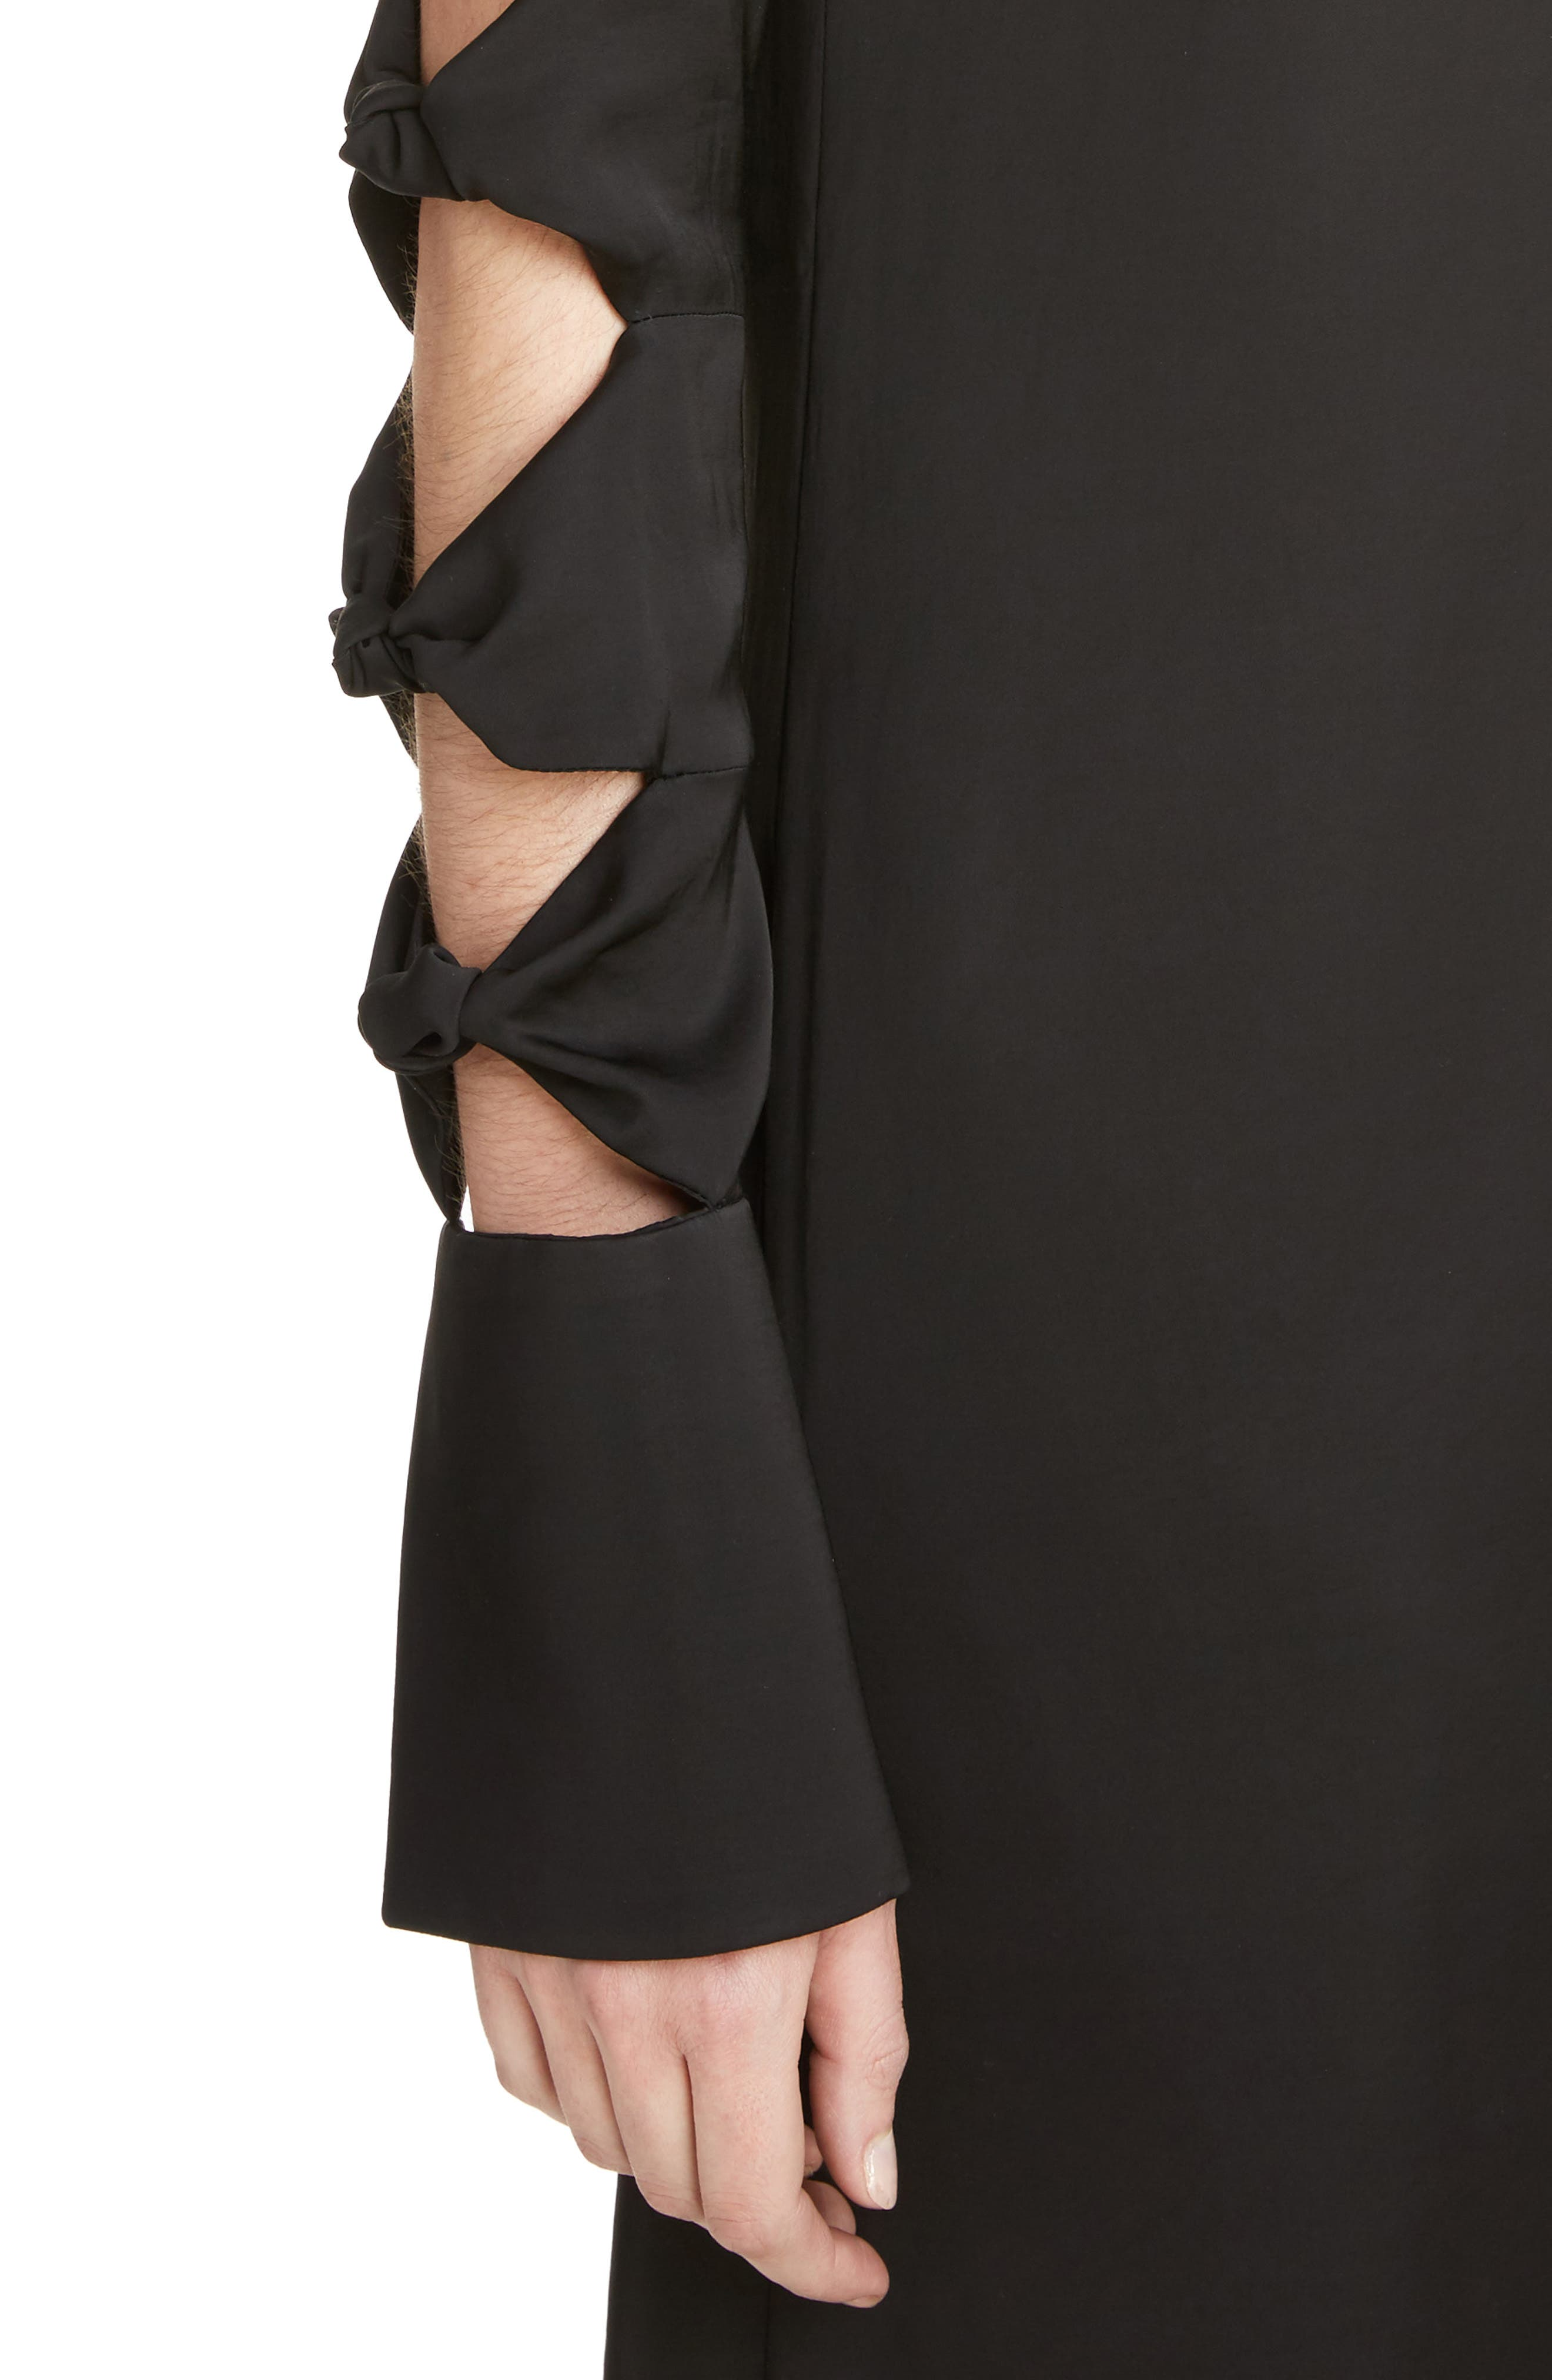 Knotted Sleeve Dress,                             Alternate thumbnail 4, color,                             001